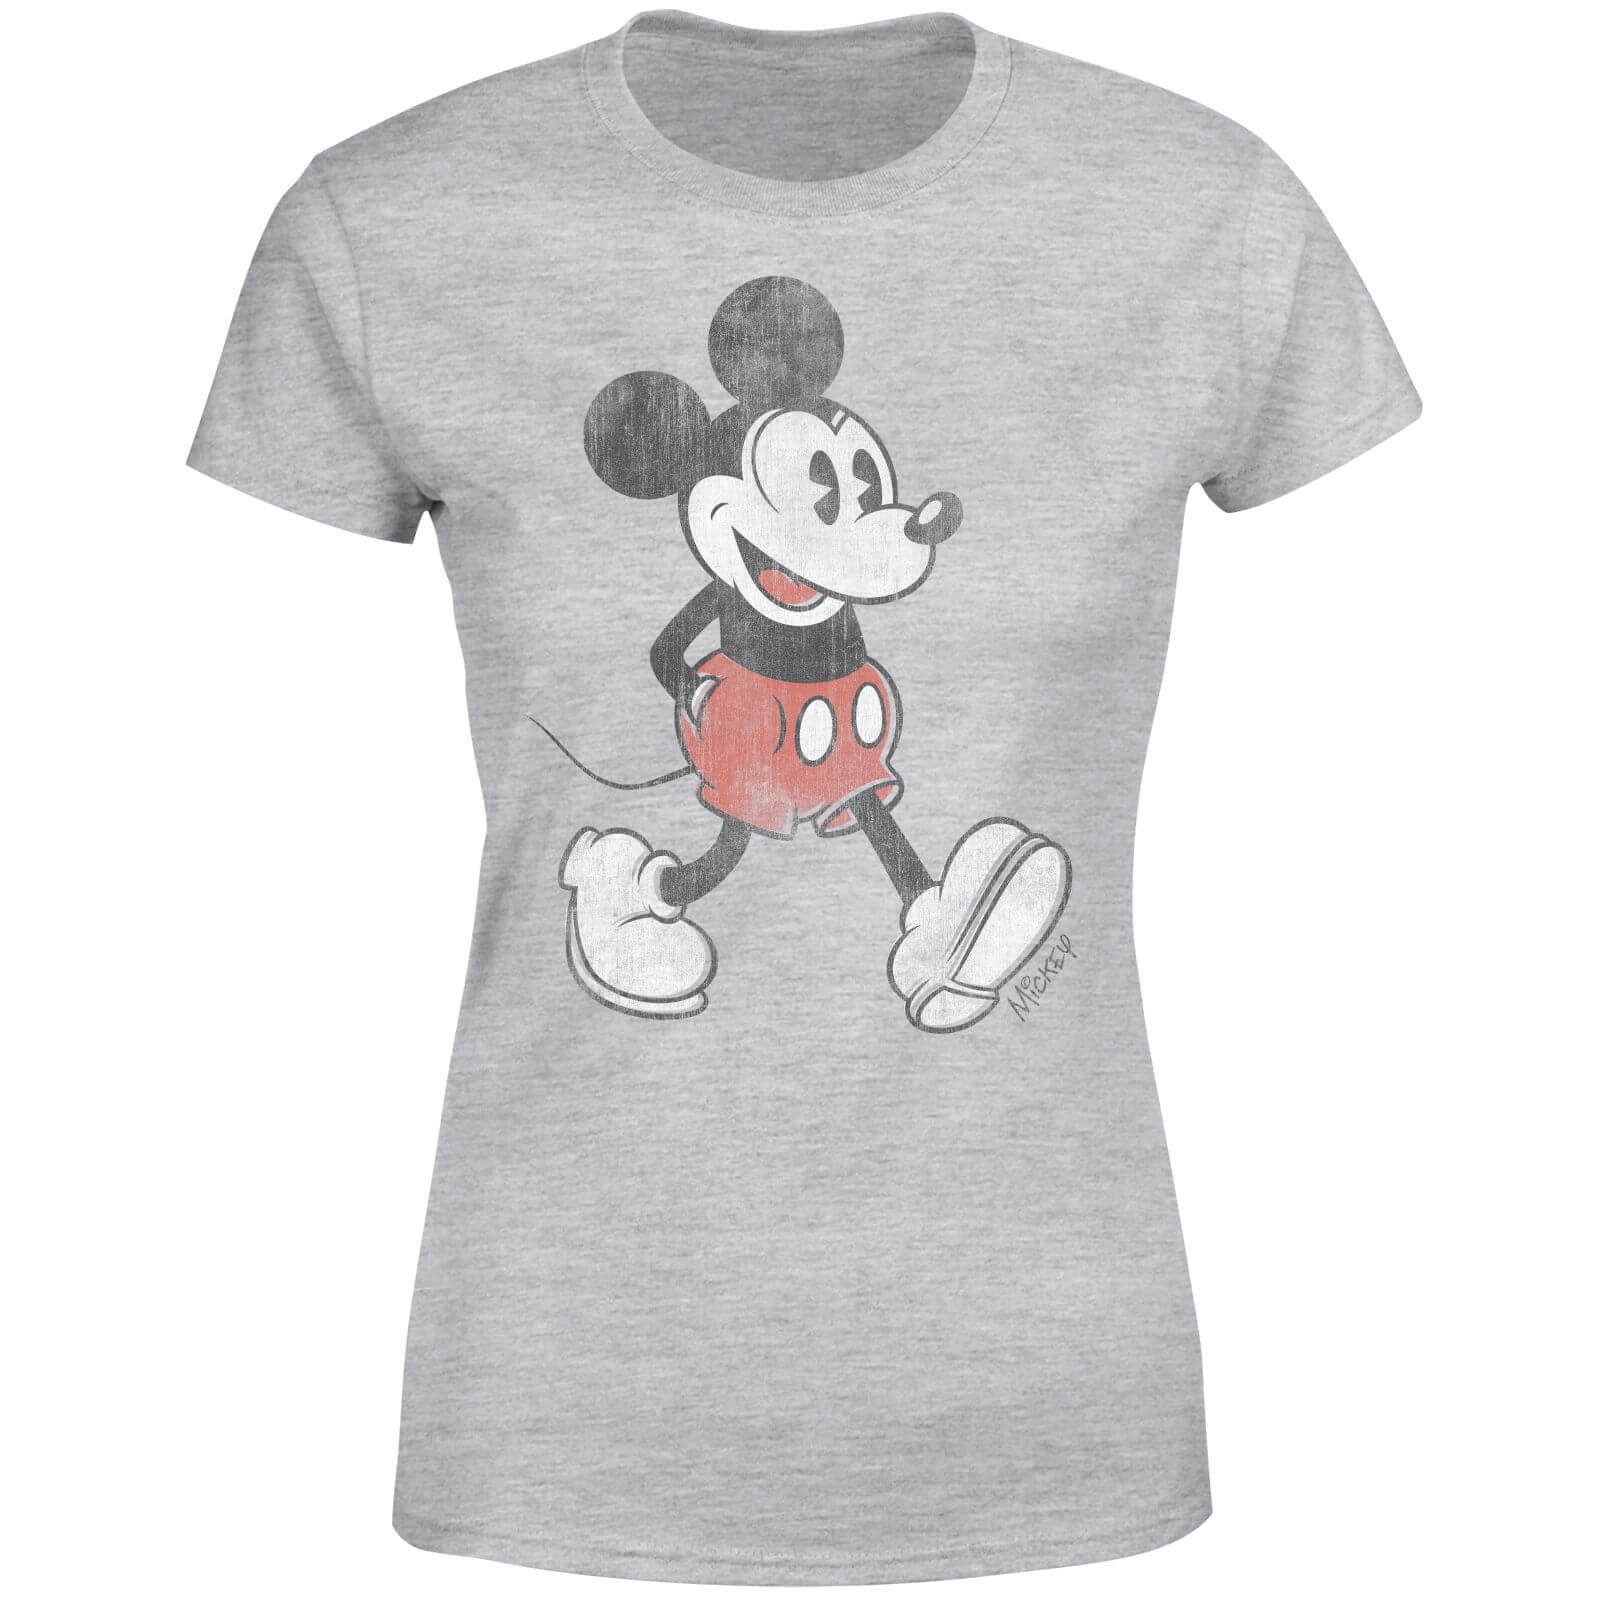 Disney Mickey Mouse Walking Women